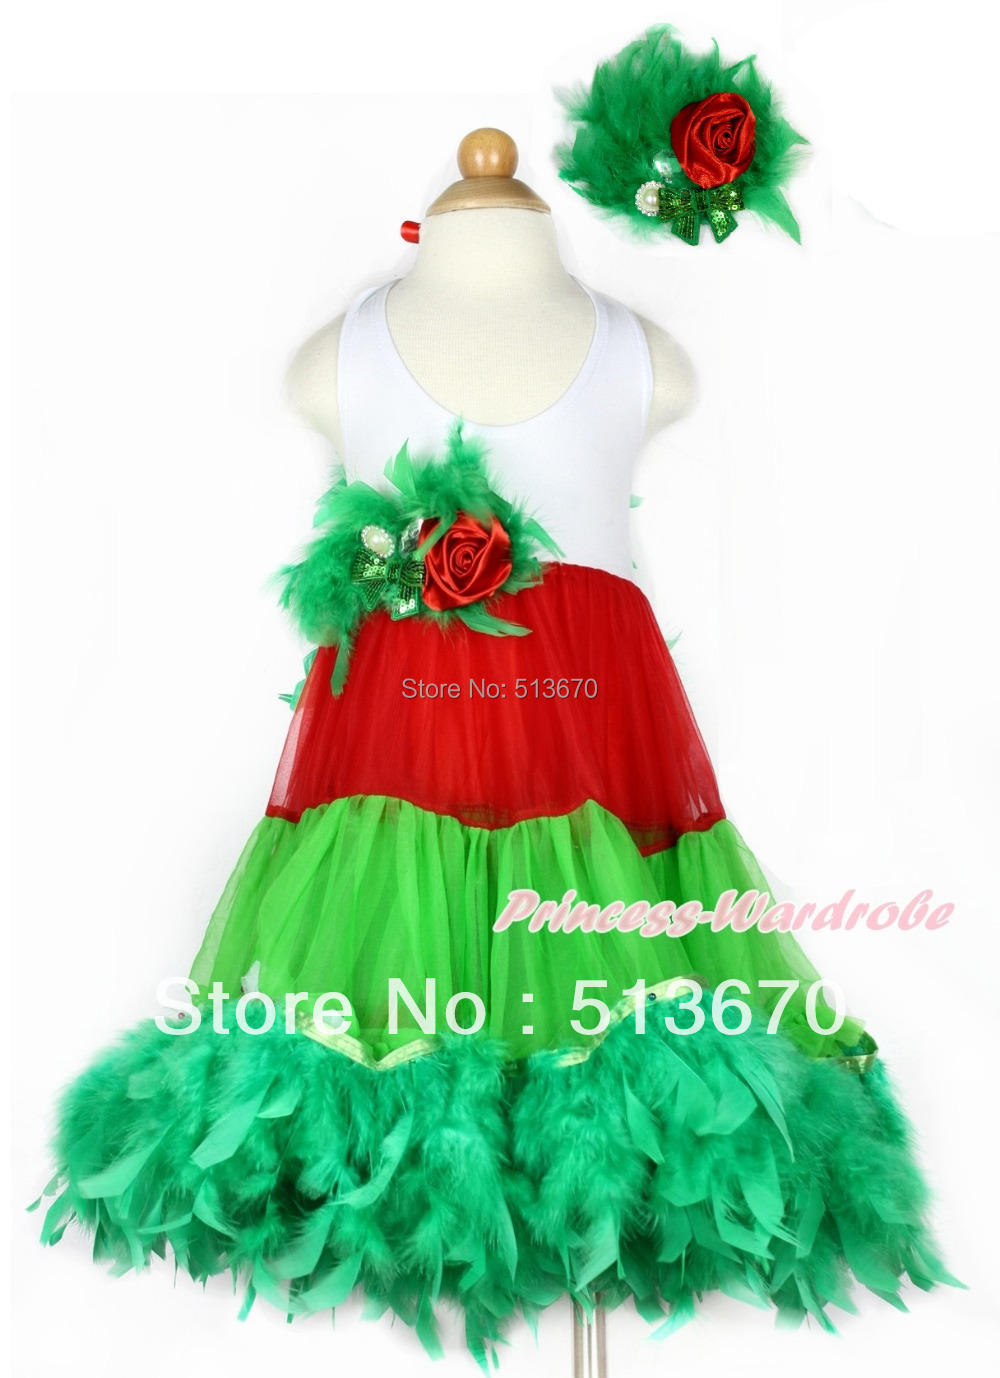 Xmas White Red Green ONE-PIECE Petti Dress Kelly Green Posh Feather Kelly Green Feather Rose Bow With Accessory 2PC Set MALP29-2 leopard print with choco brown one piece petti dress with bow malp03